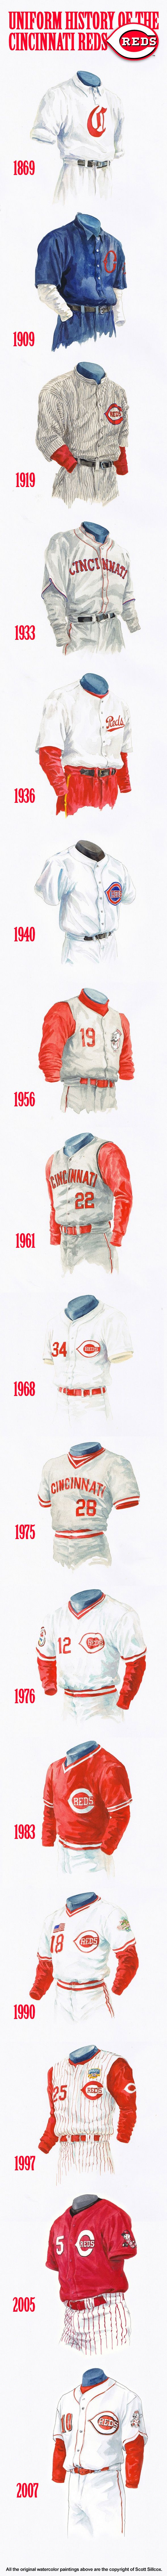 The Uniform History of the Cincinnati Reds #cincinnatireds #reds